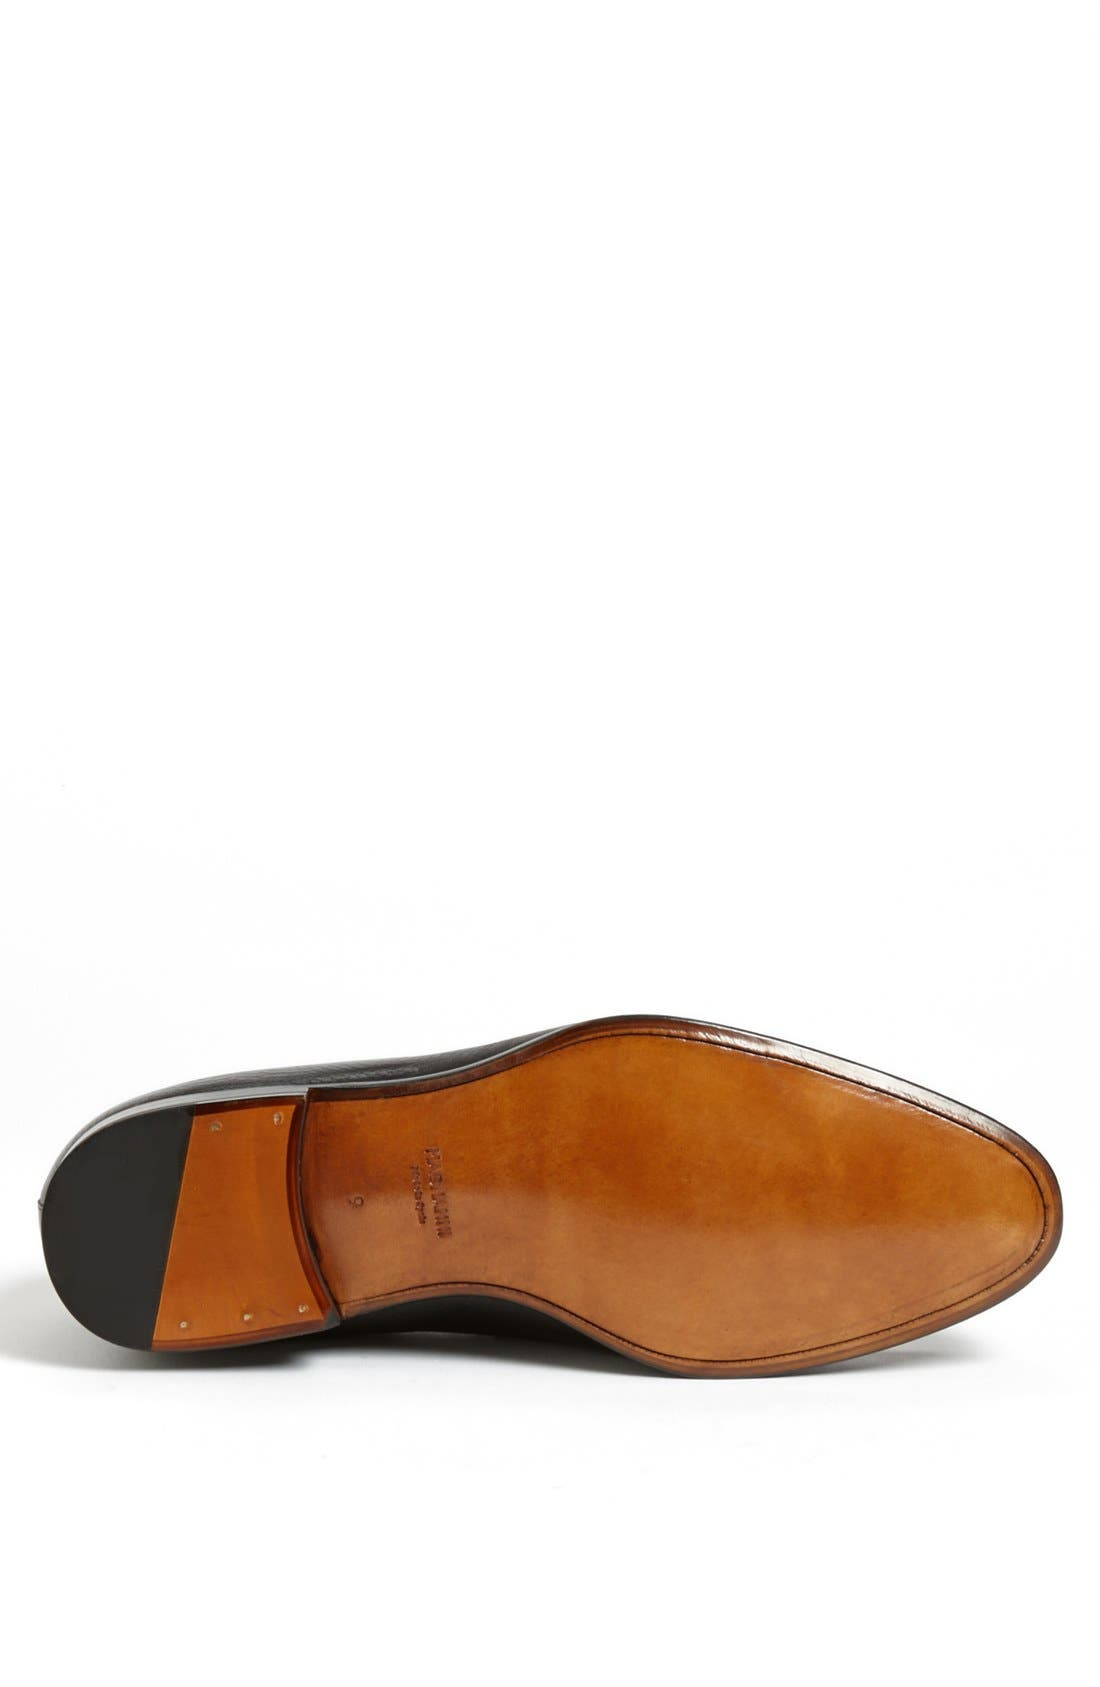 Alternate Image 4  - Magnanni 'Emilio' Penny Loafer